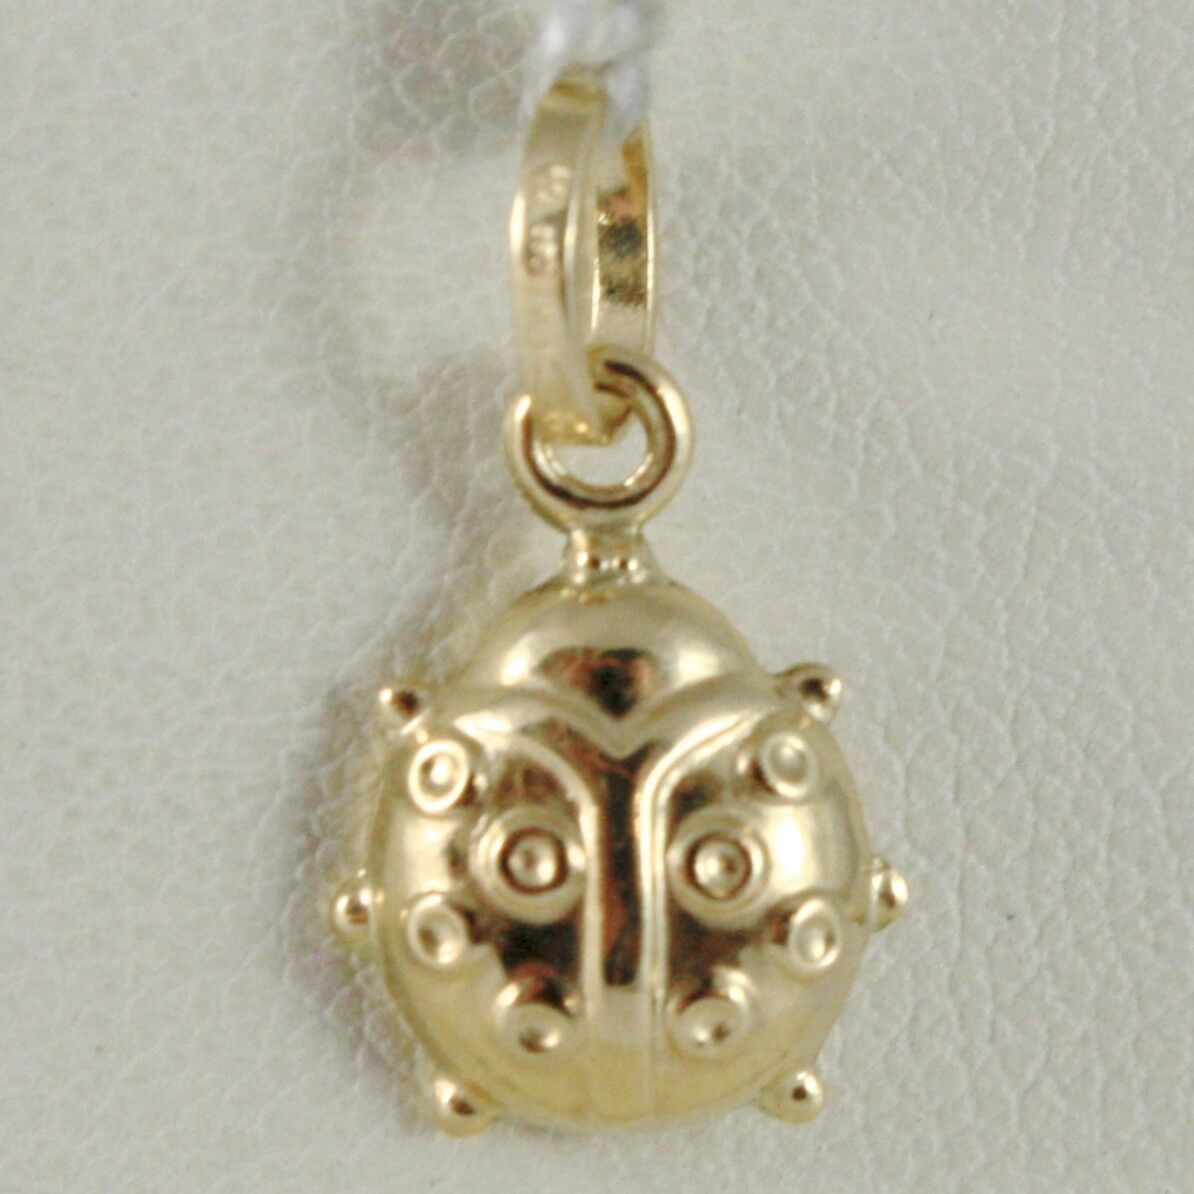 18K YELLOW GOLD ROUNDED LADYBUG PENDANT CHARM 18MM SMOOTH LADYBIRD MADE IN ITALY